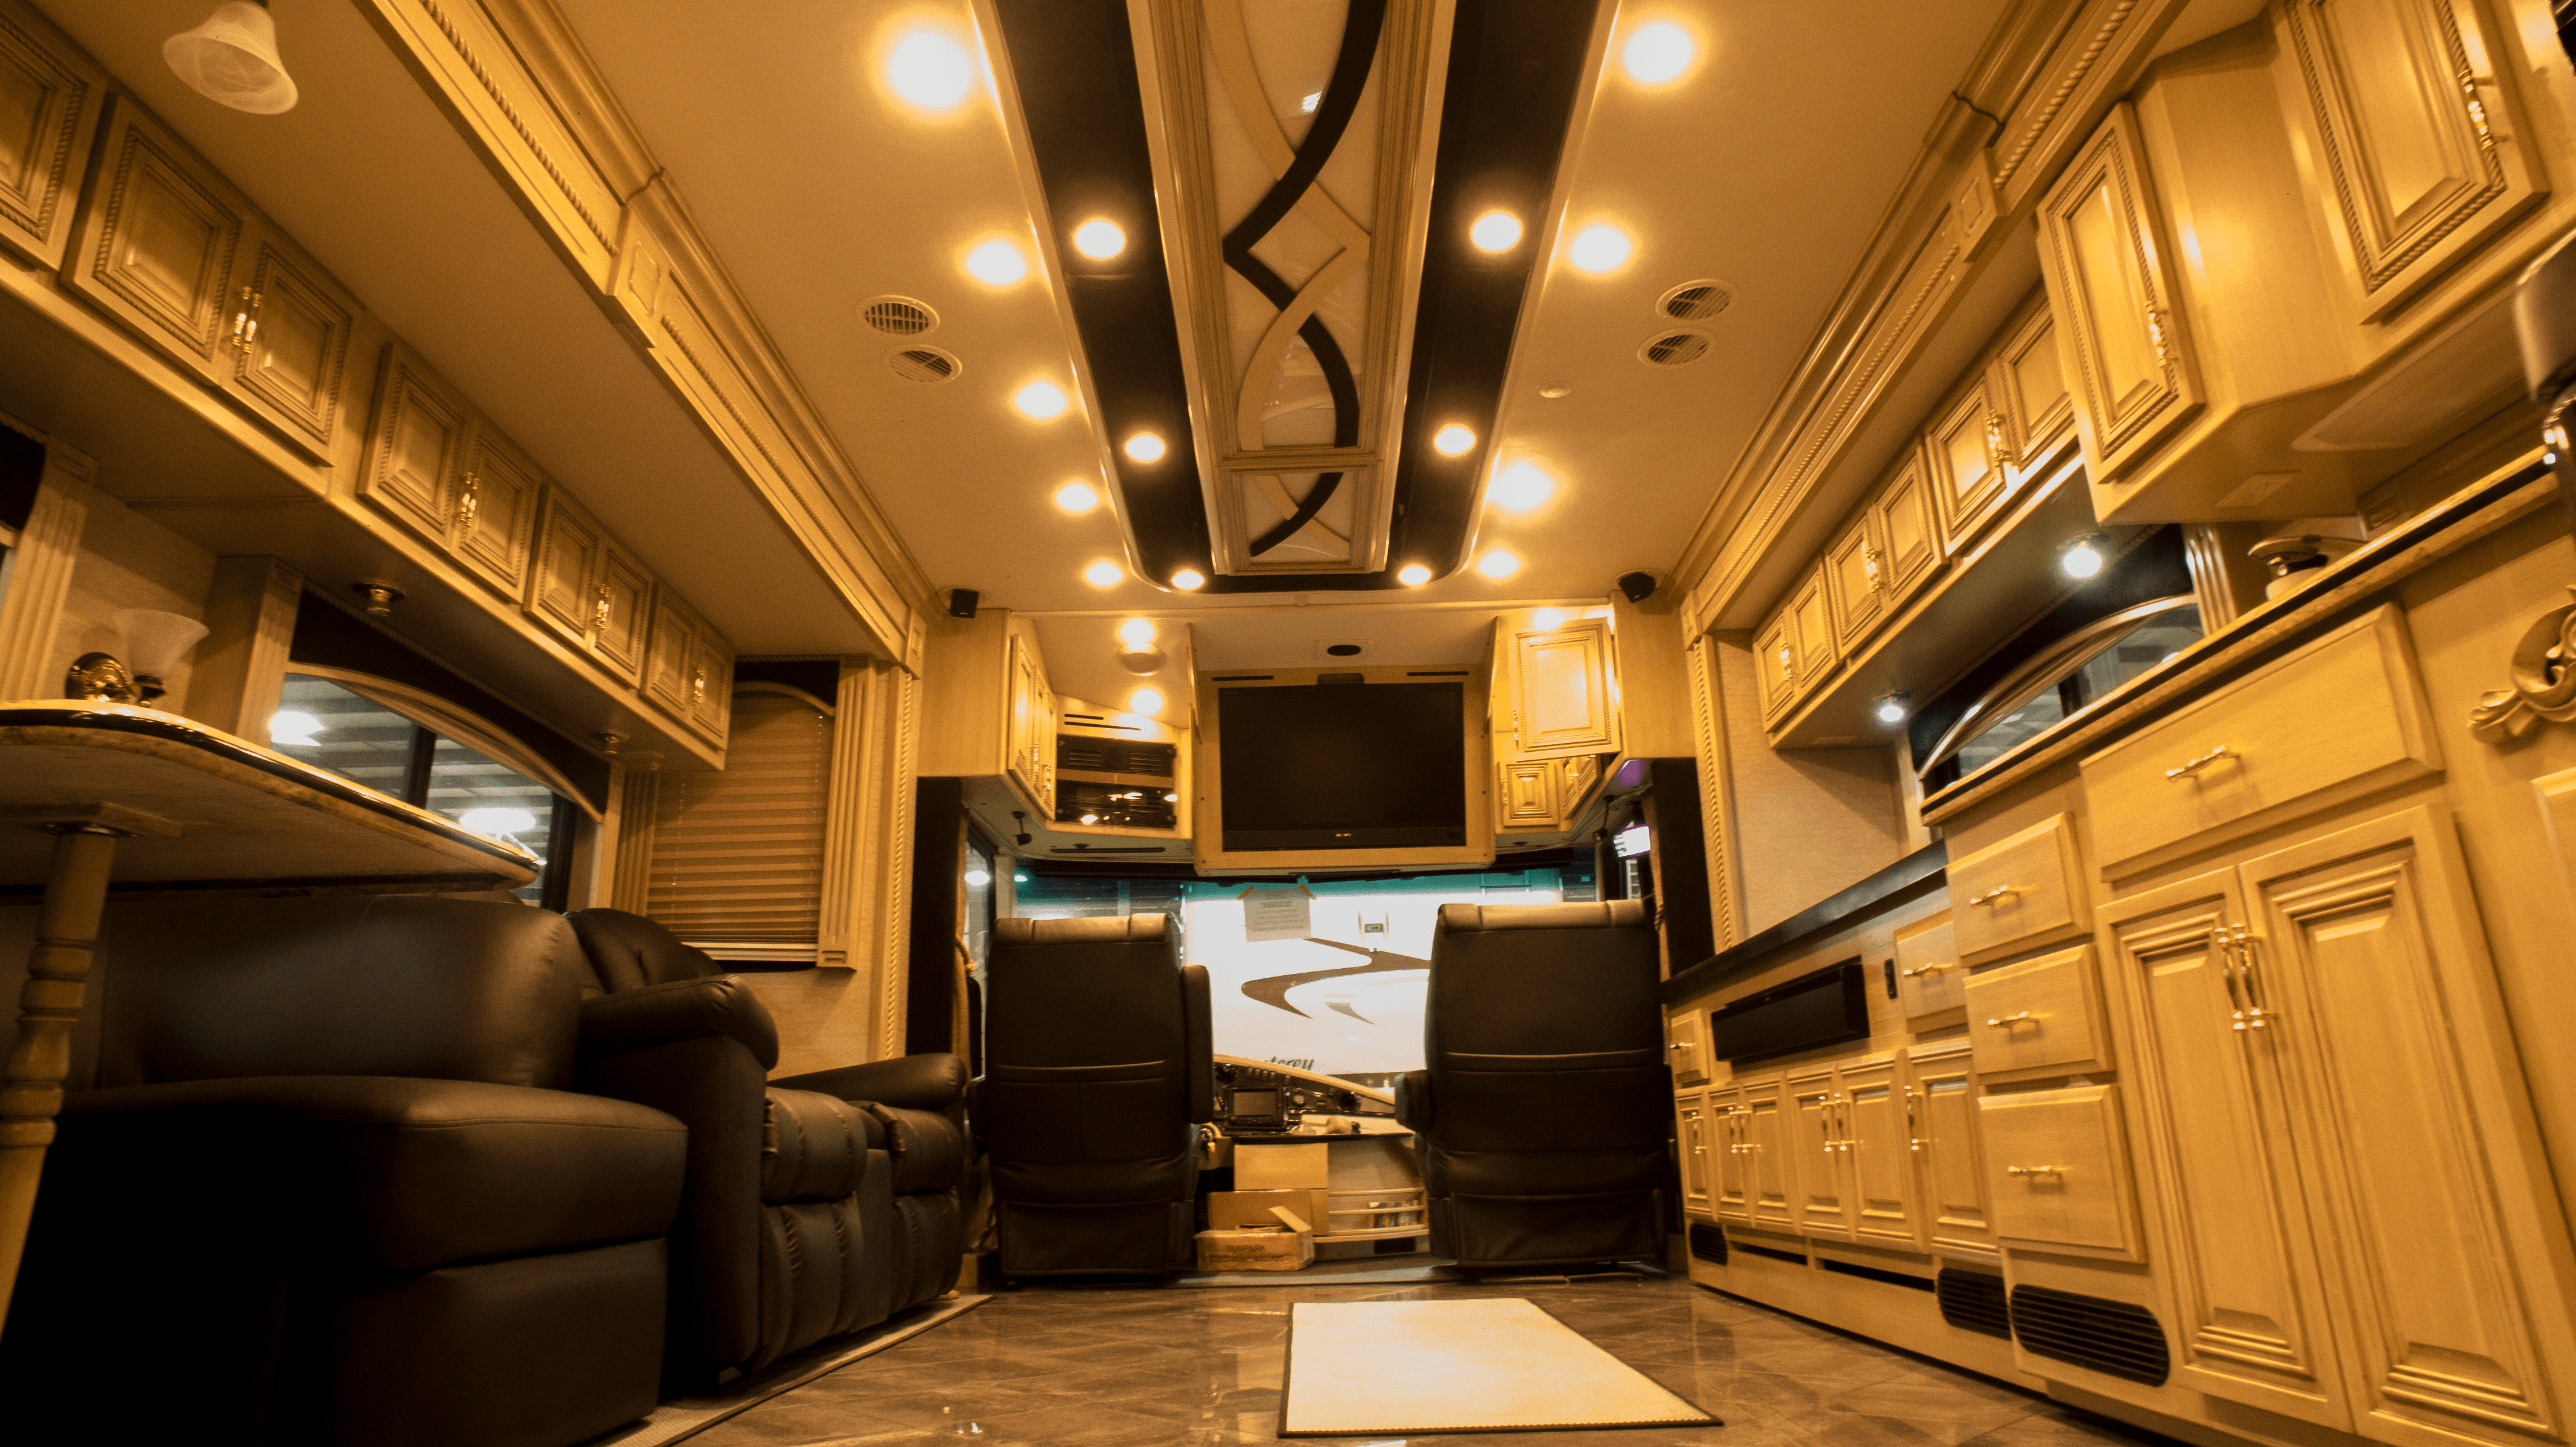 Interior Rv Remodeling We Can Remodel Your Rv Interior In